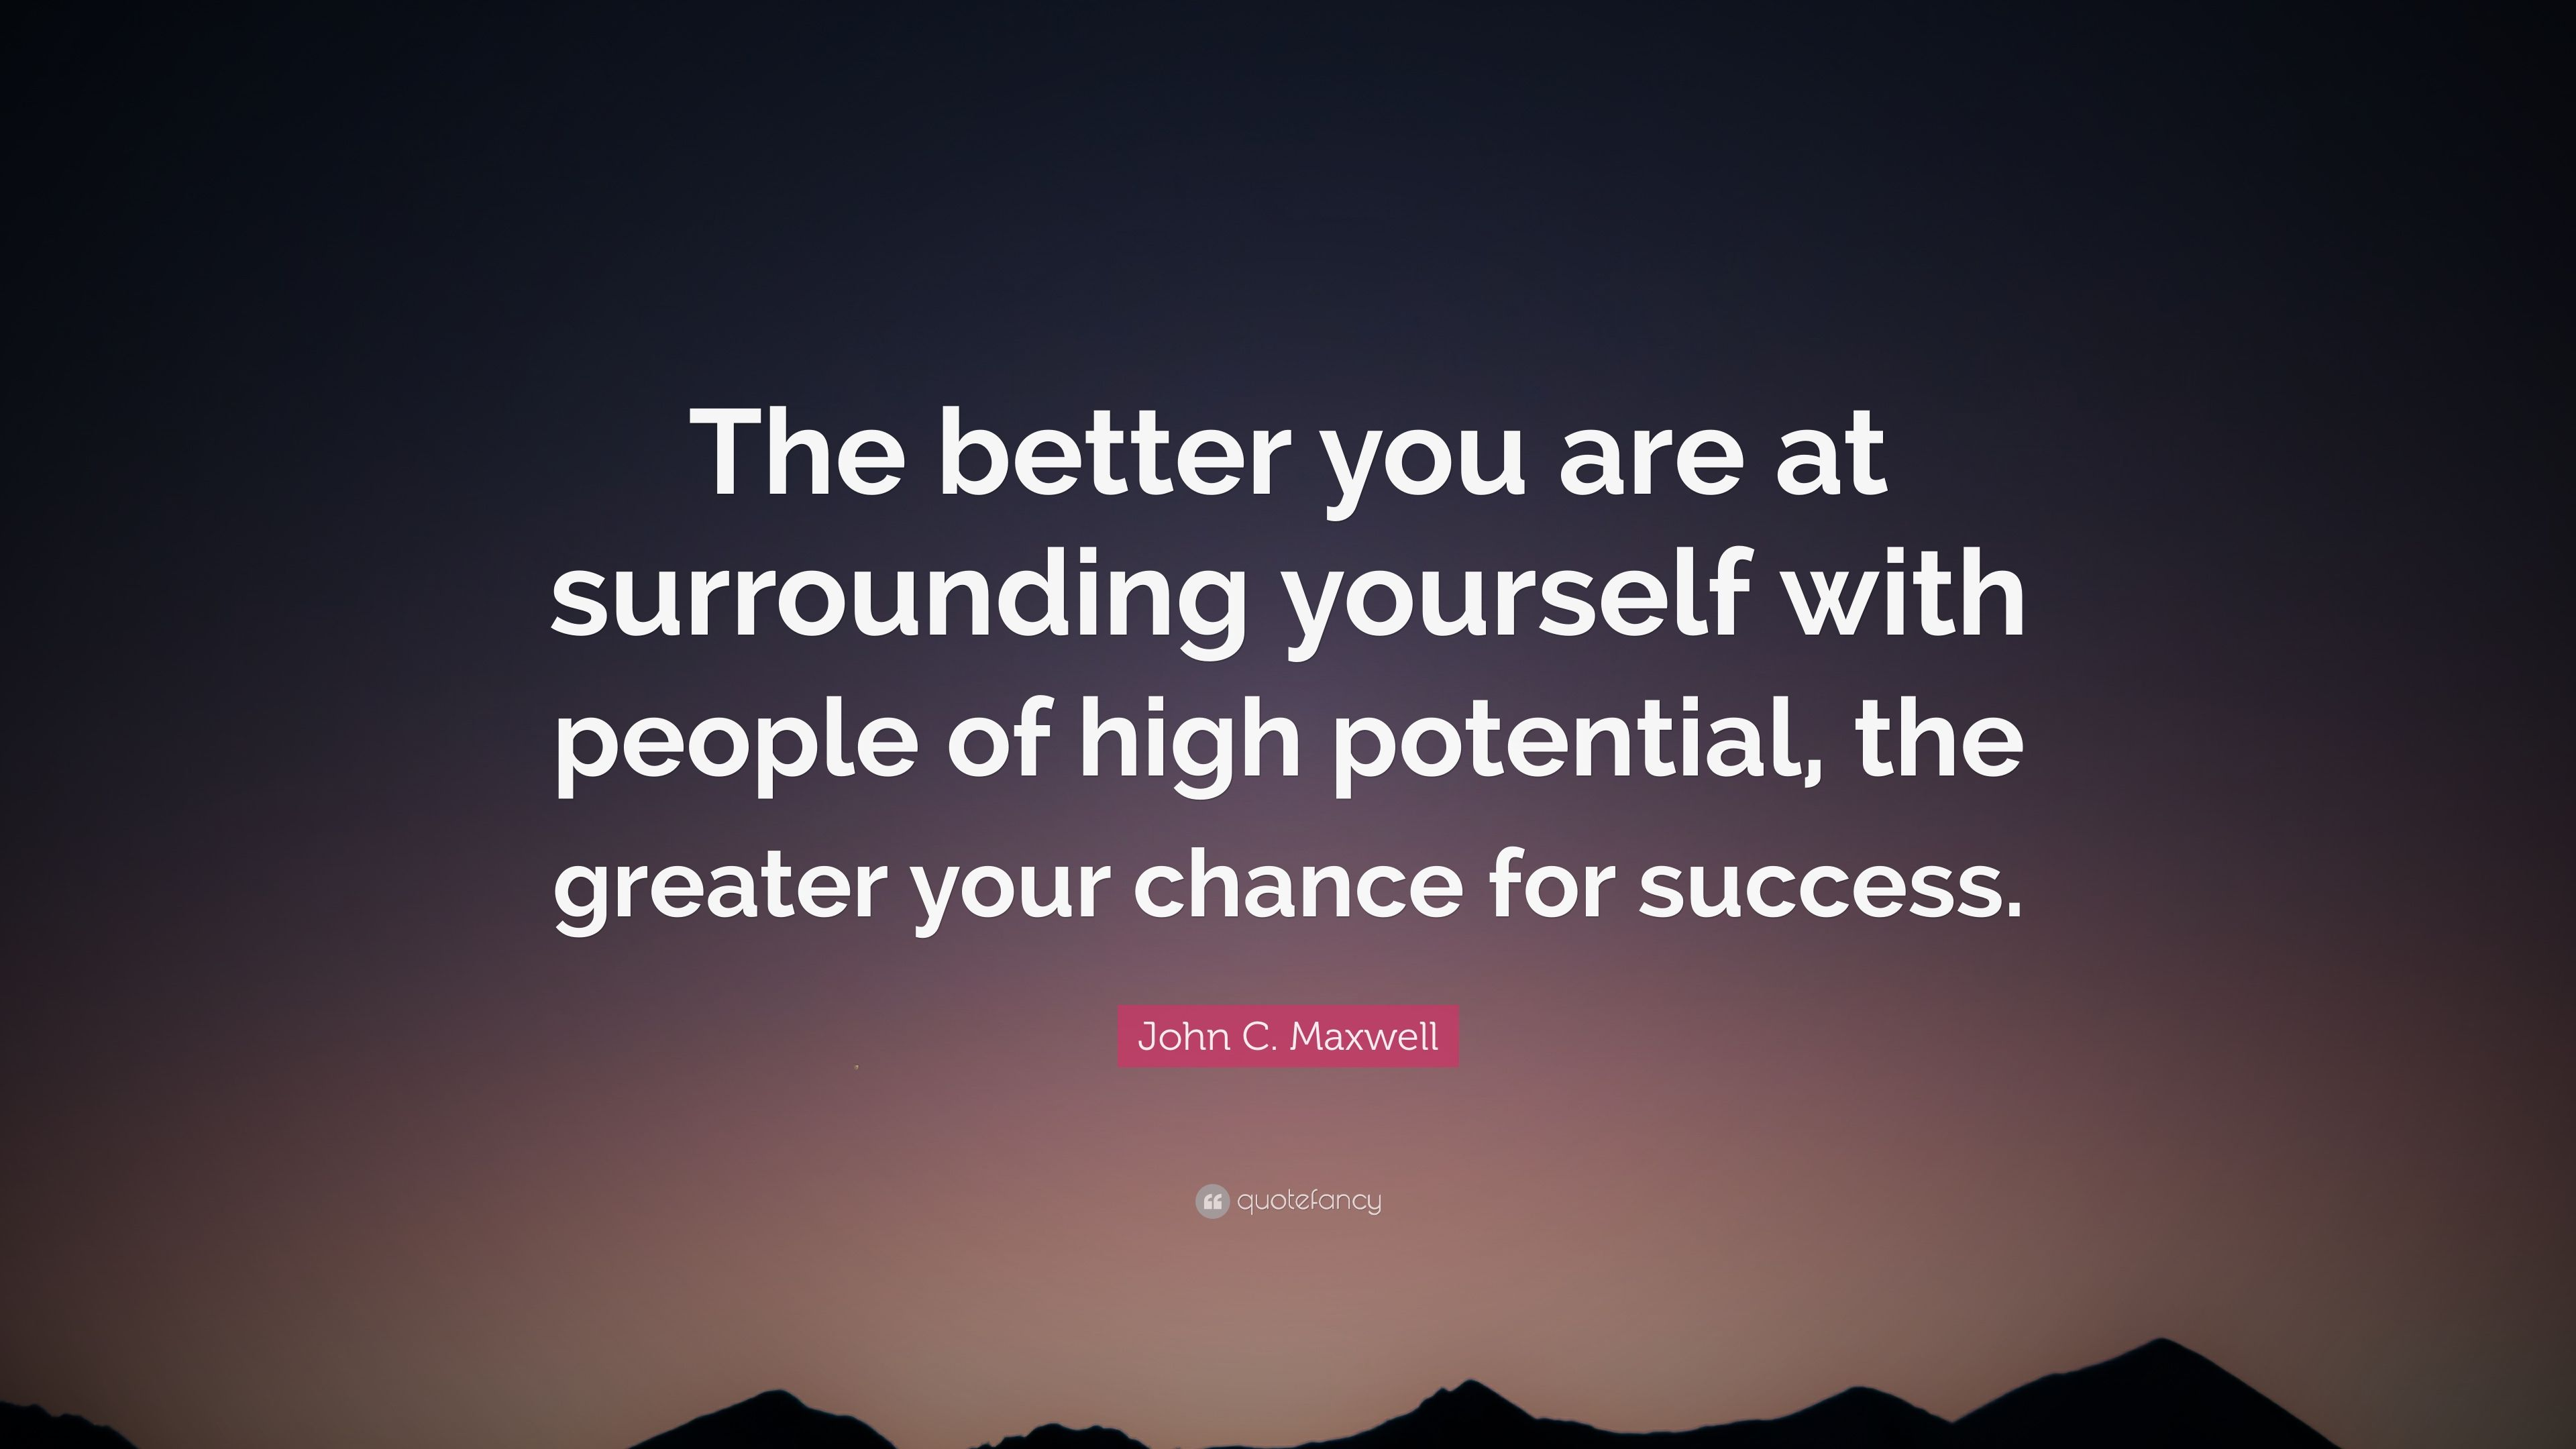 John C Maxwell Quote The Better You Are At Surrounding Yourself